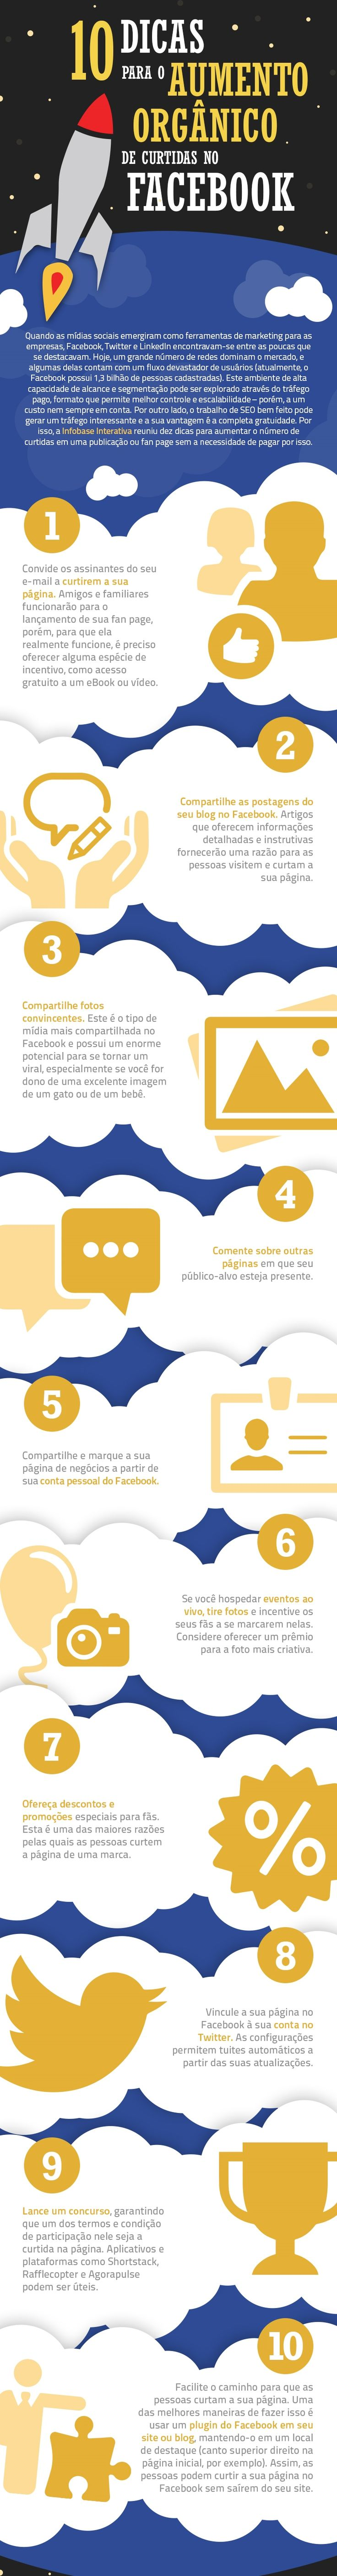 Alcance orgânico no #Facebook. #Infográfico #Marketing